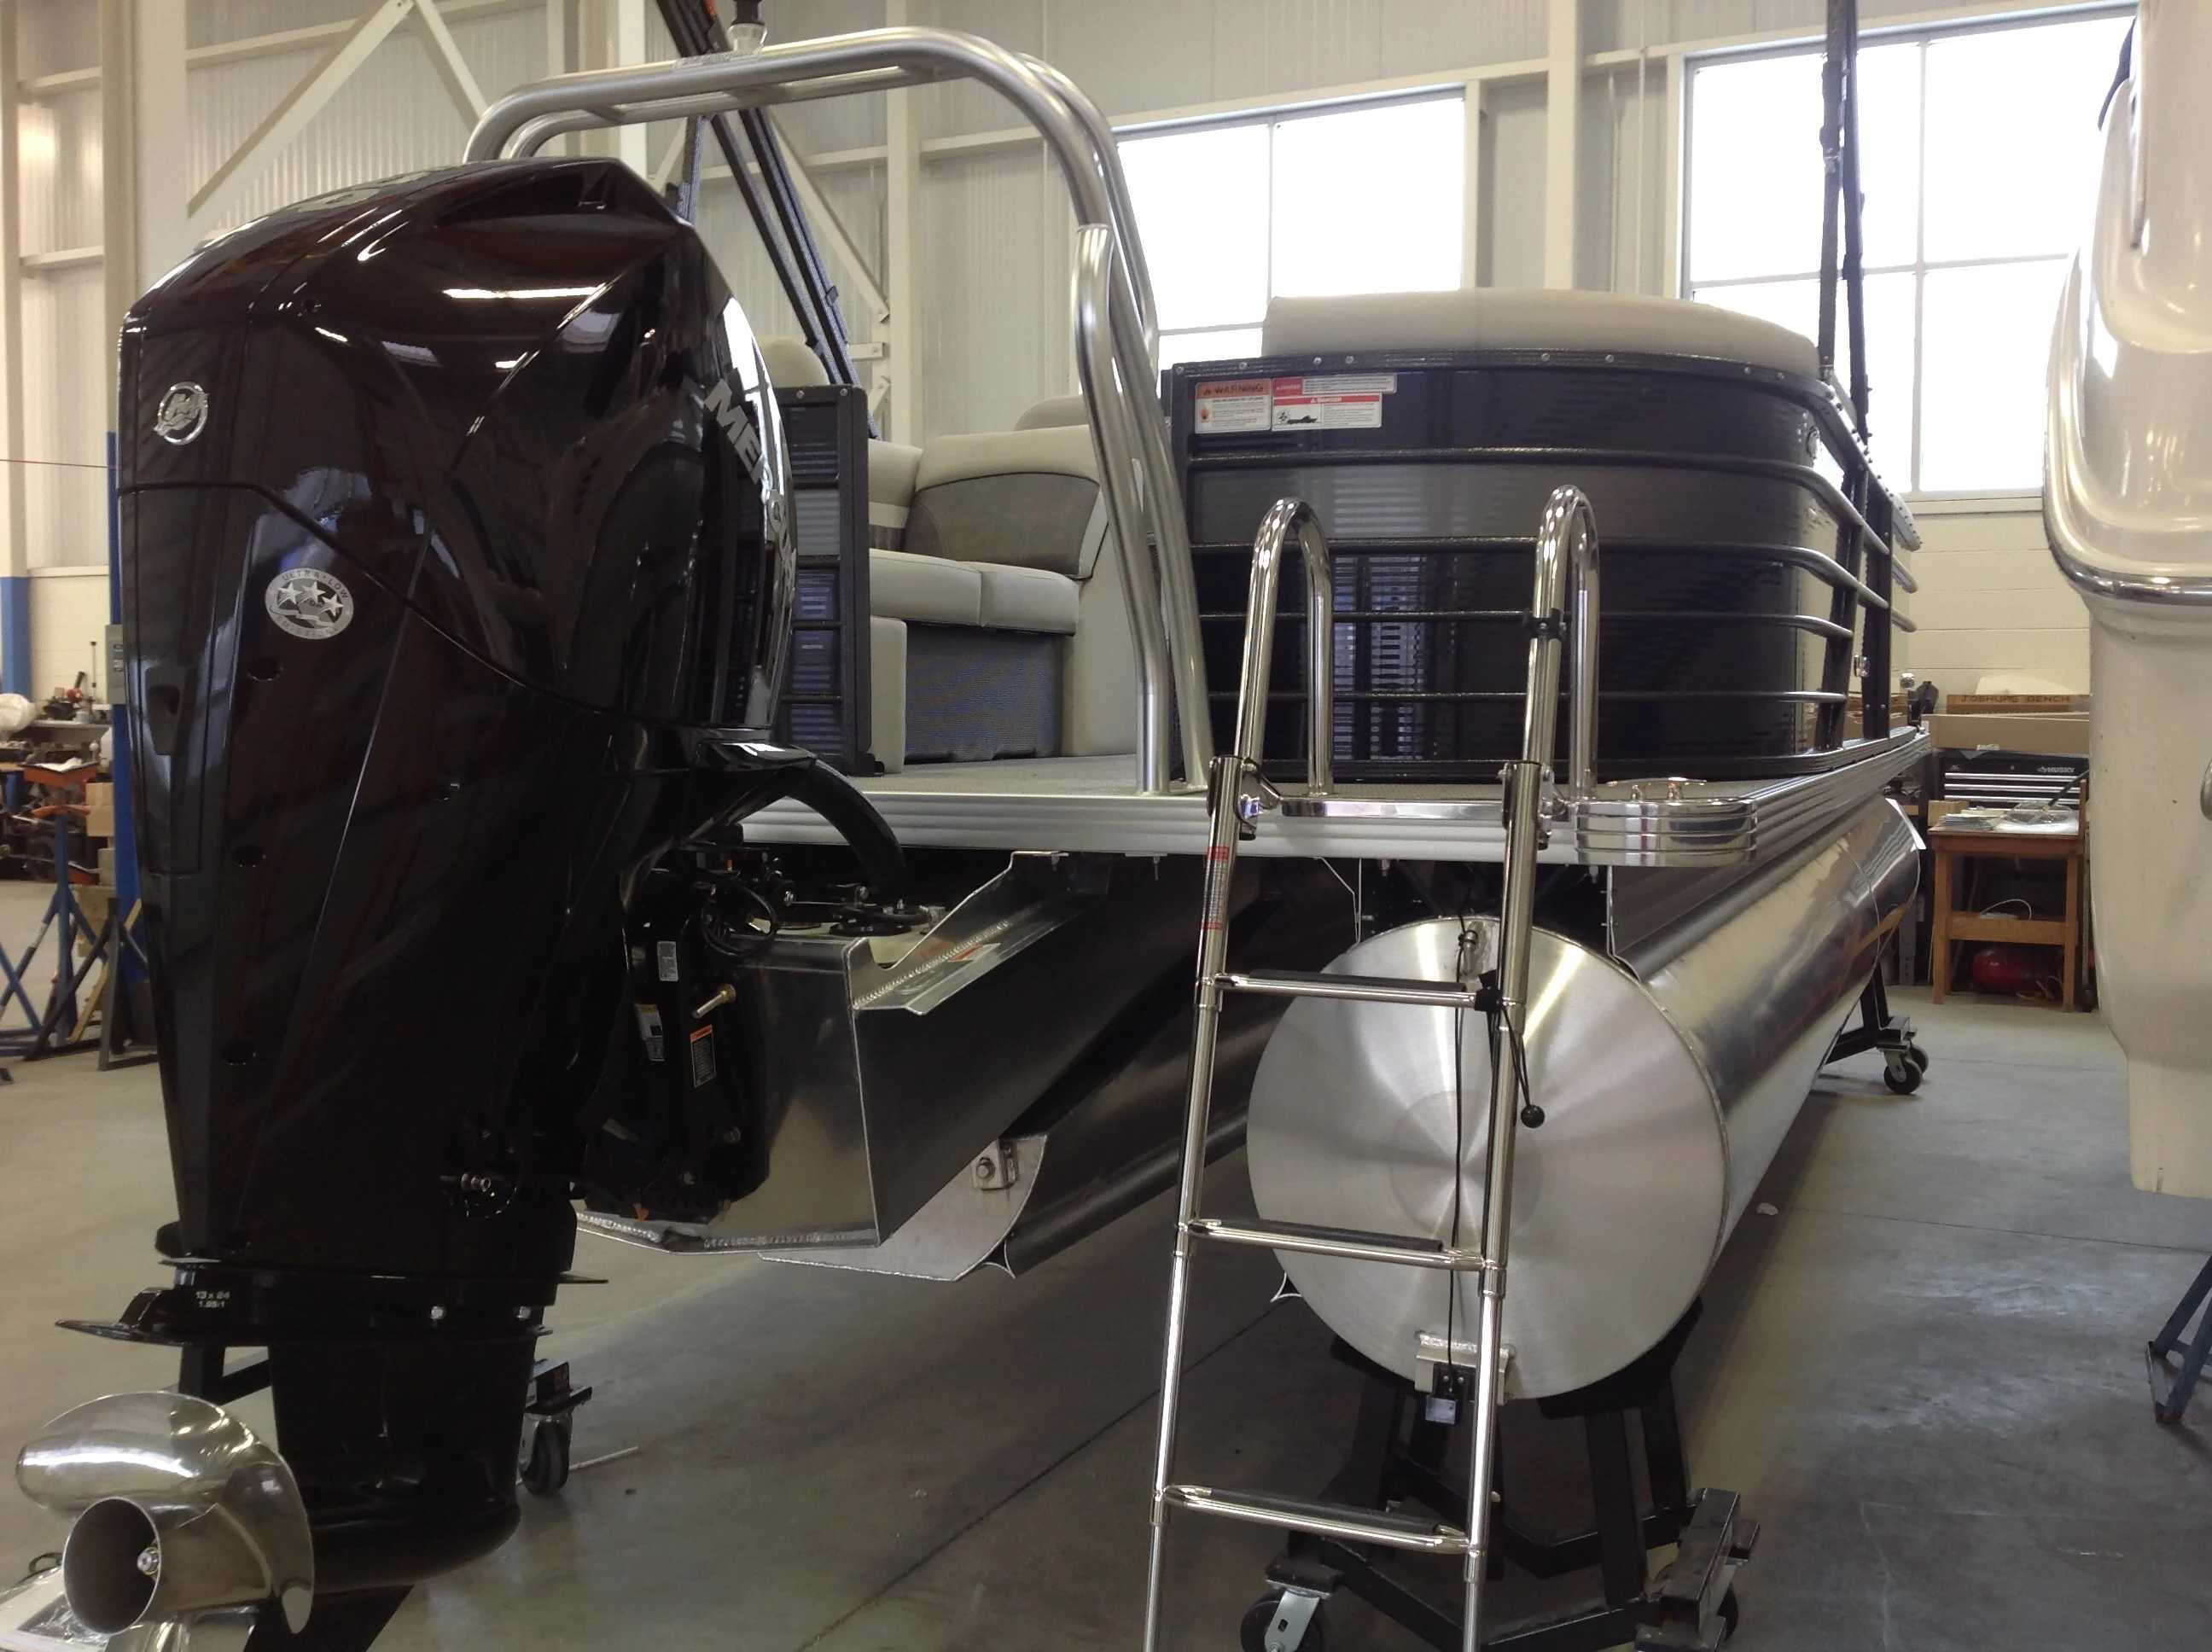 2021 Crest boat for sale, model of the boat is CL DLX & Image # 13 of 14